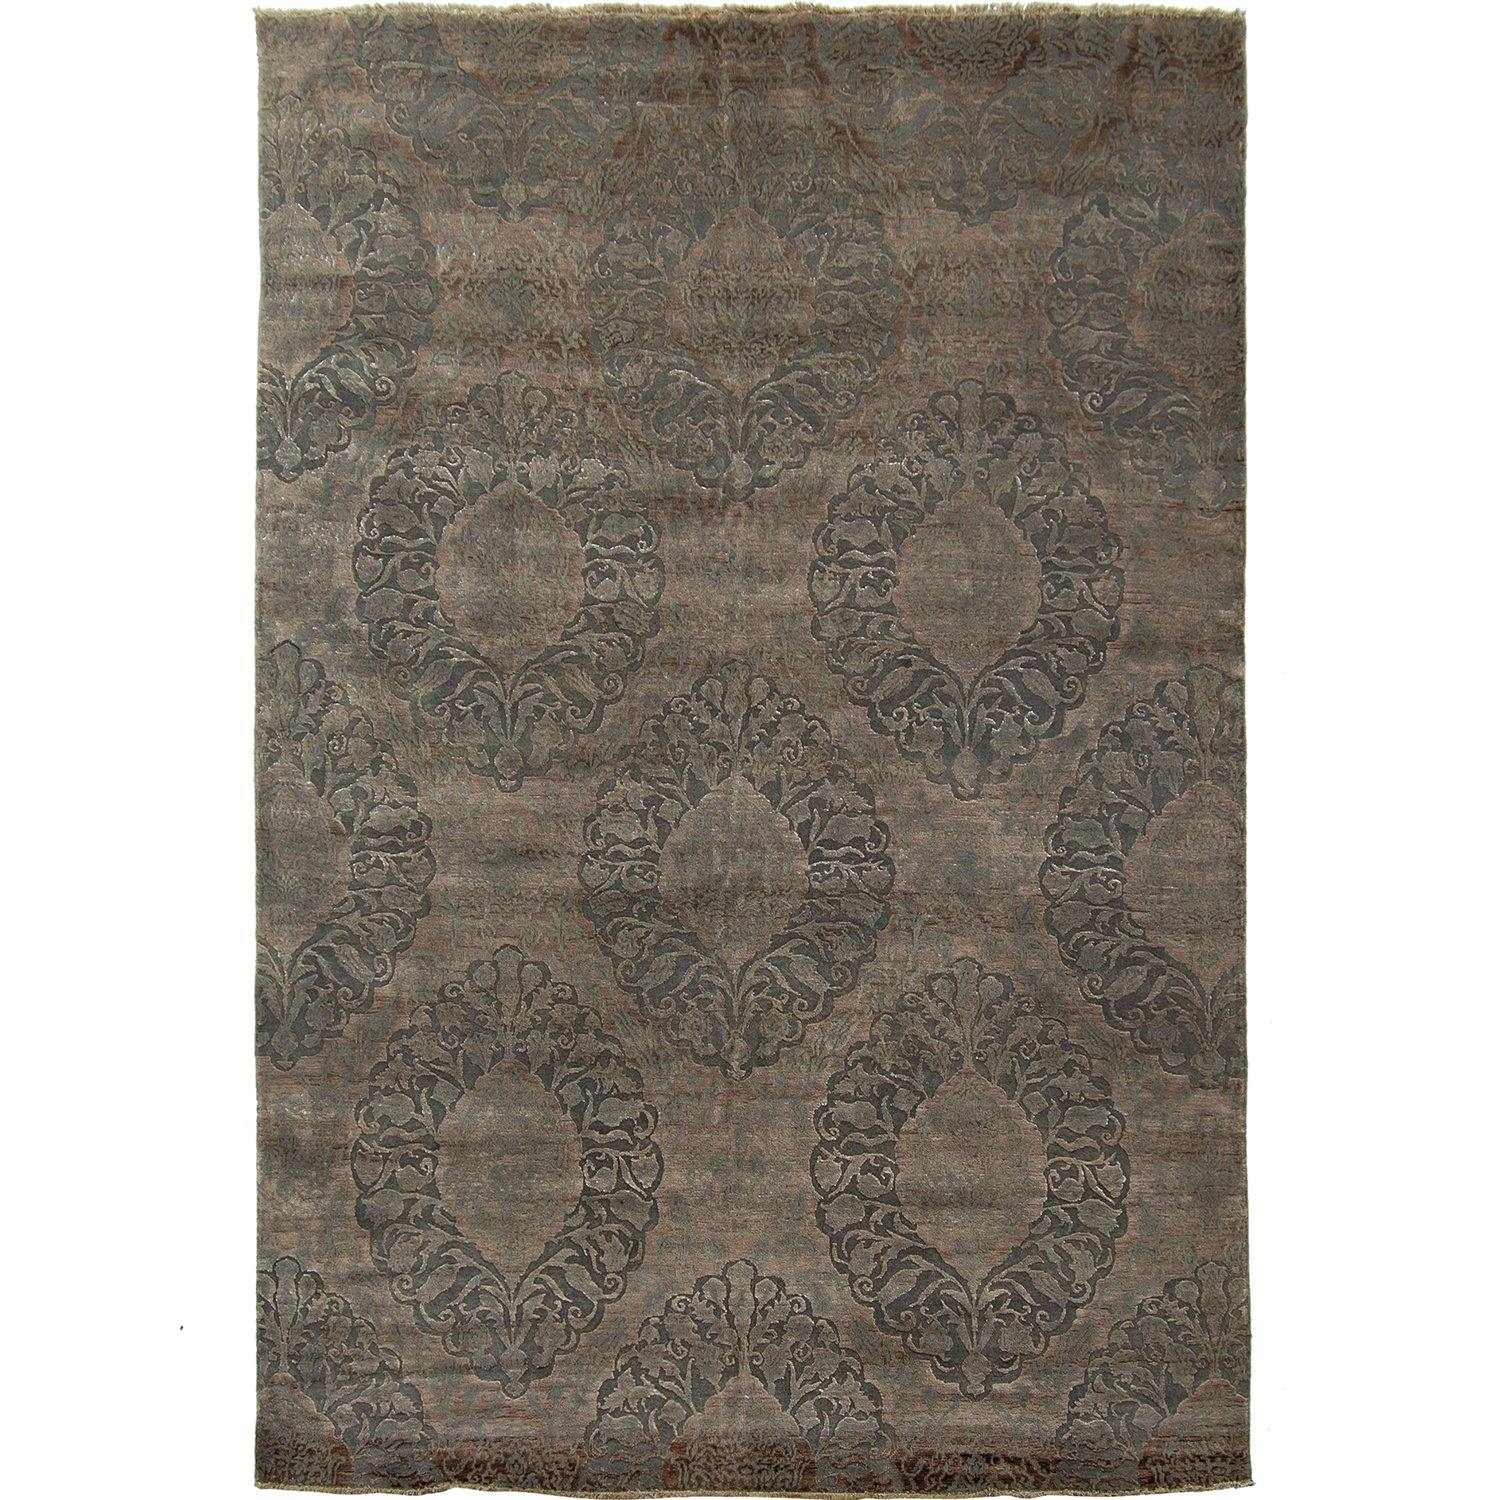 Fine Contemporary Hand-knotted NZ Wool Rug 199cm x 303cm Persian-Rug | House-of-Haghi | NewMarket | Auckland | NZ | Handmade Persian Rugs | Hand Knotted Persian Rugs